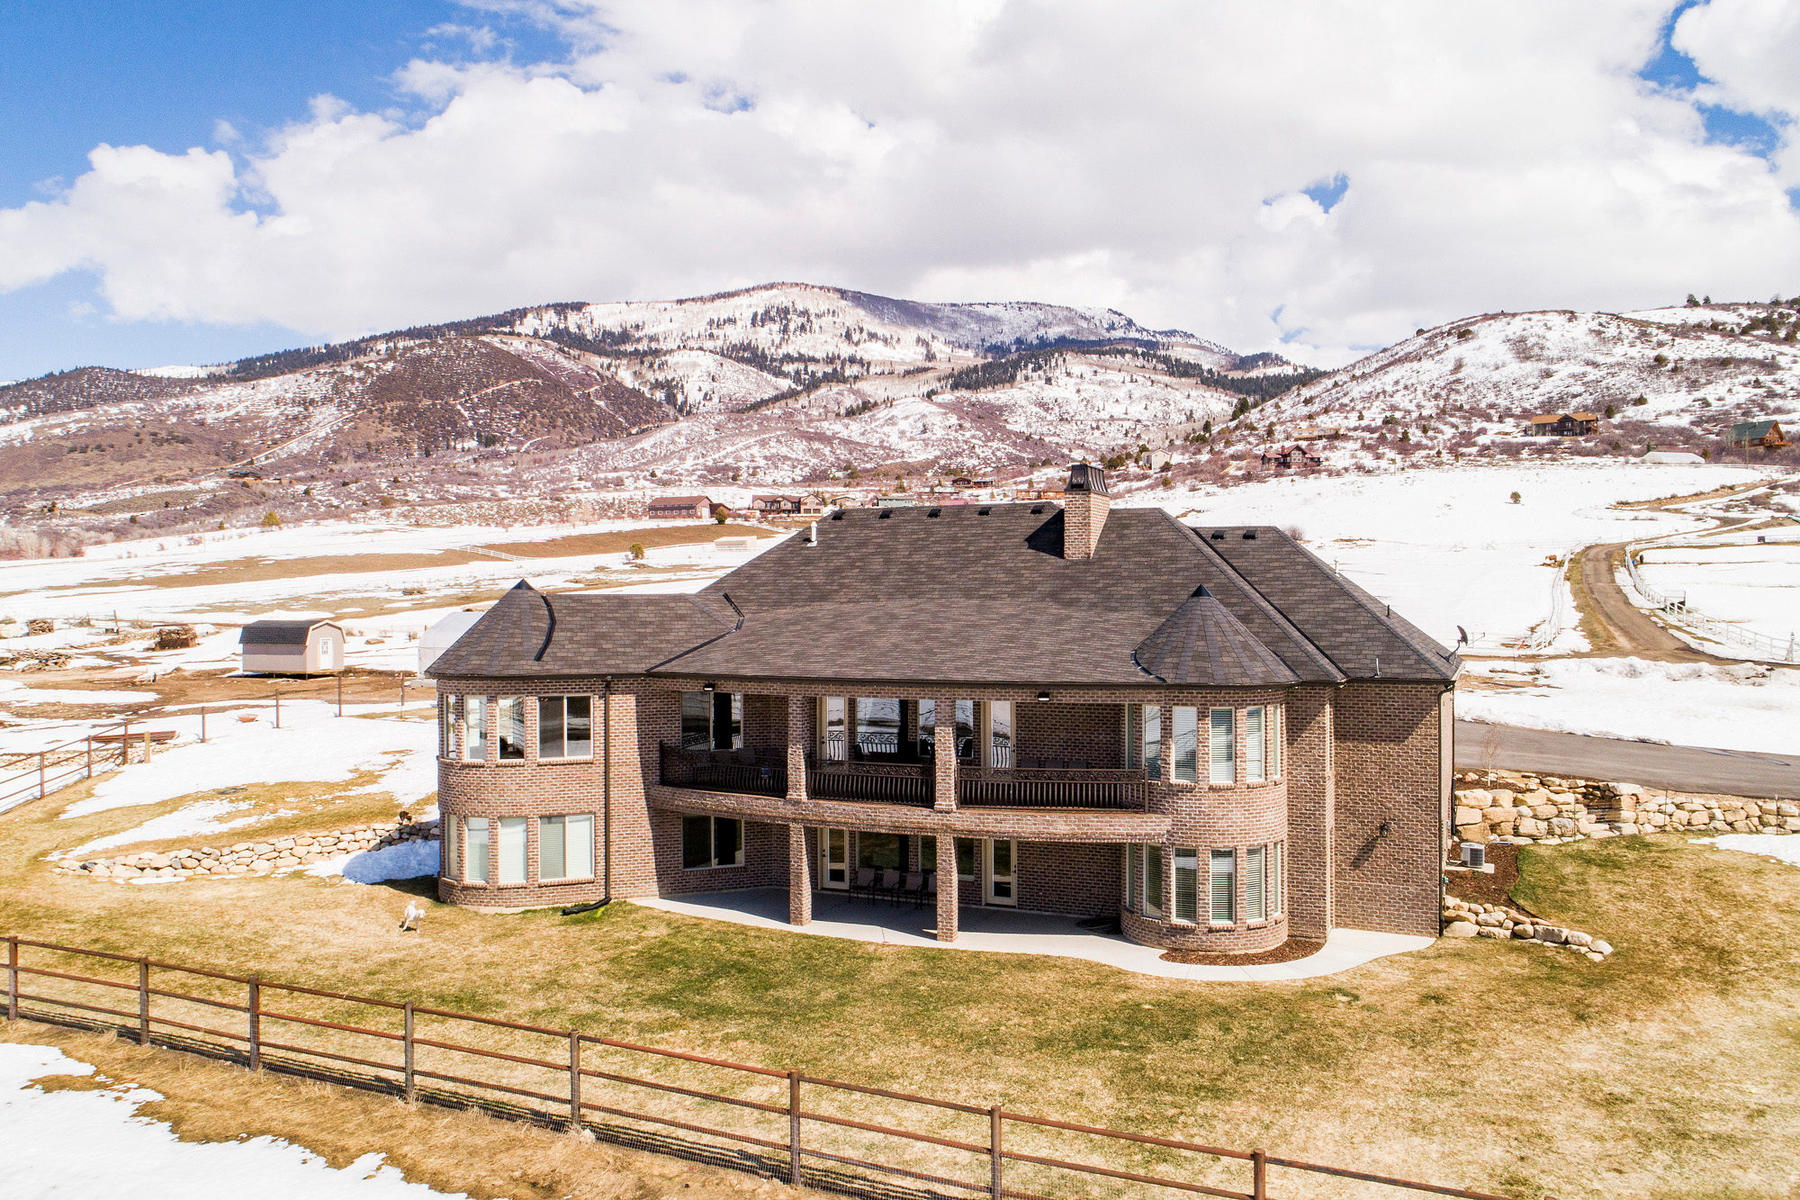 Single Family Homes for Active at Stunning Kamas Horse Property 1009 Farmer Ln Kamas, Utah 84036 United States